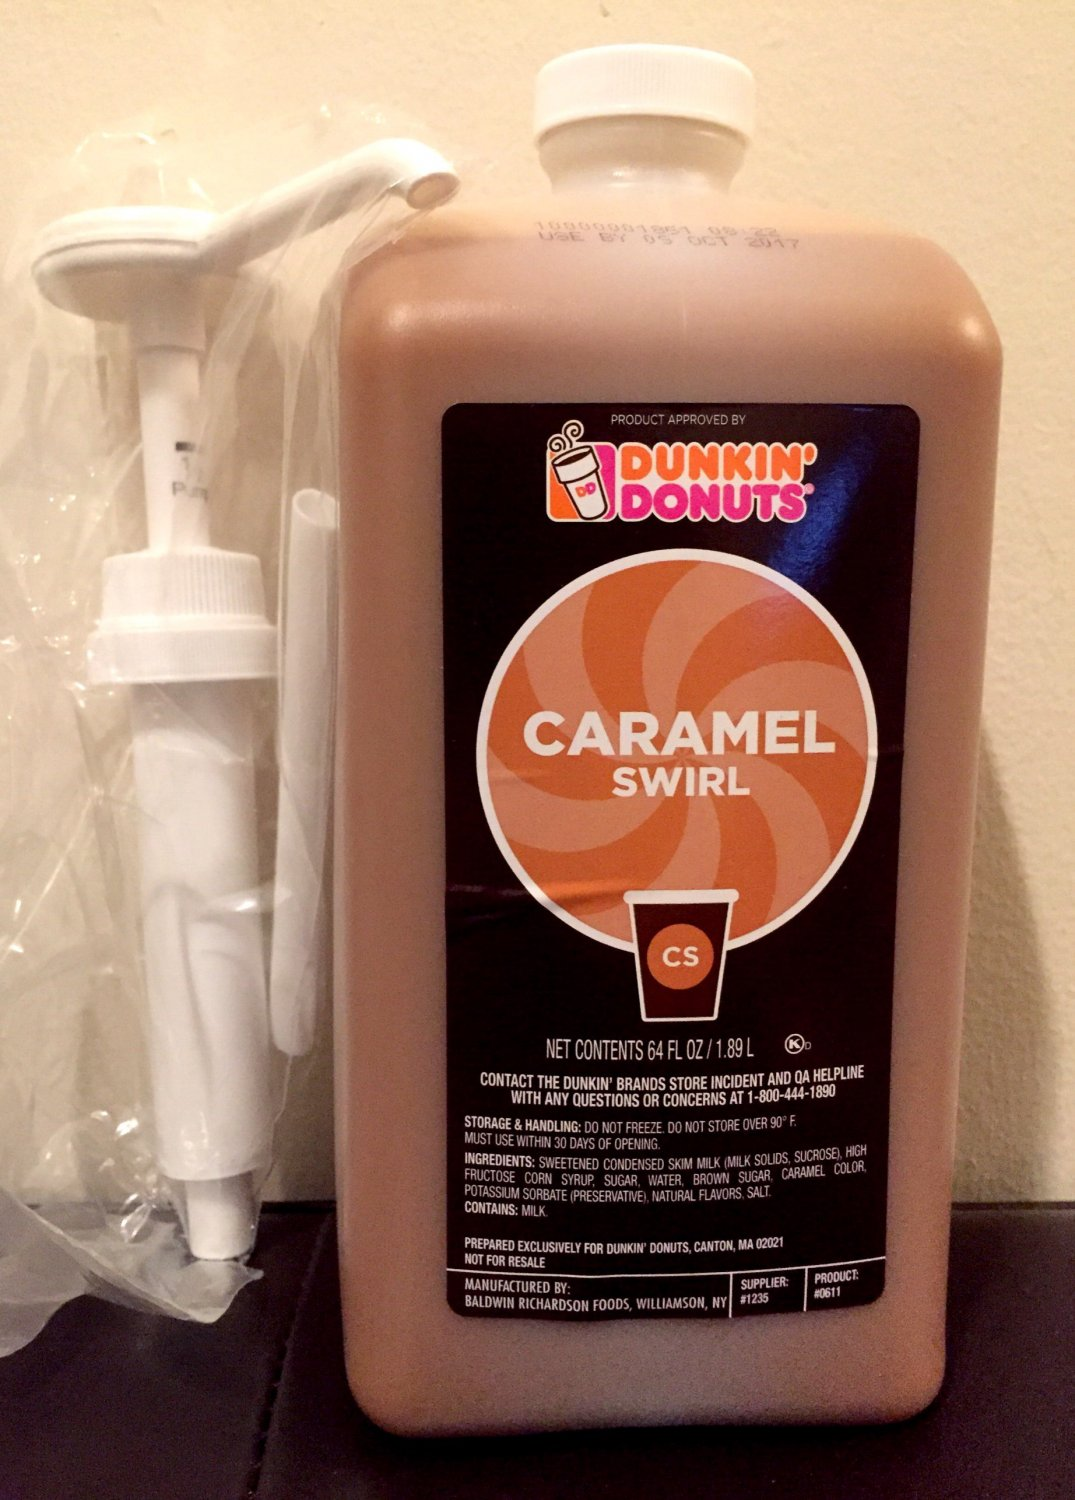 Dunkin Donuts Caramel Swirl with Pump